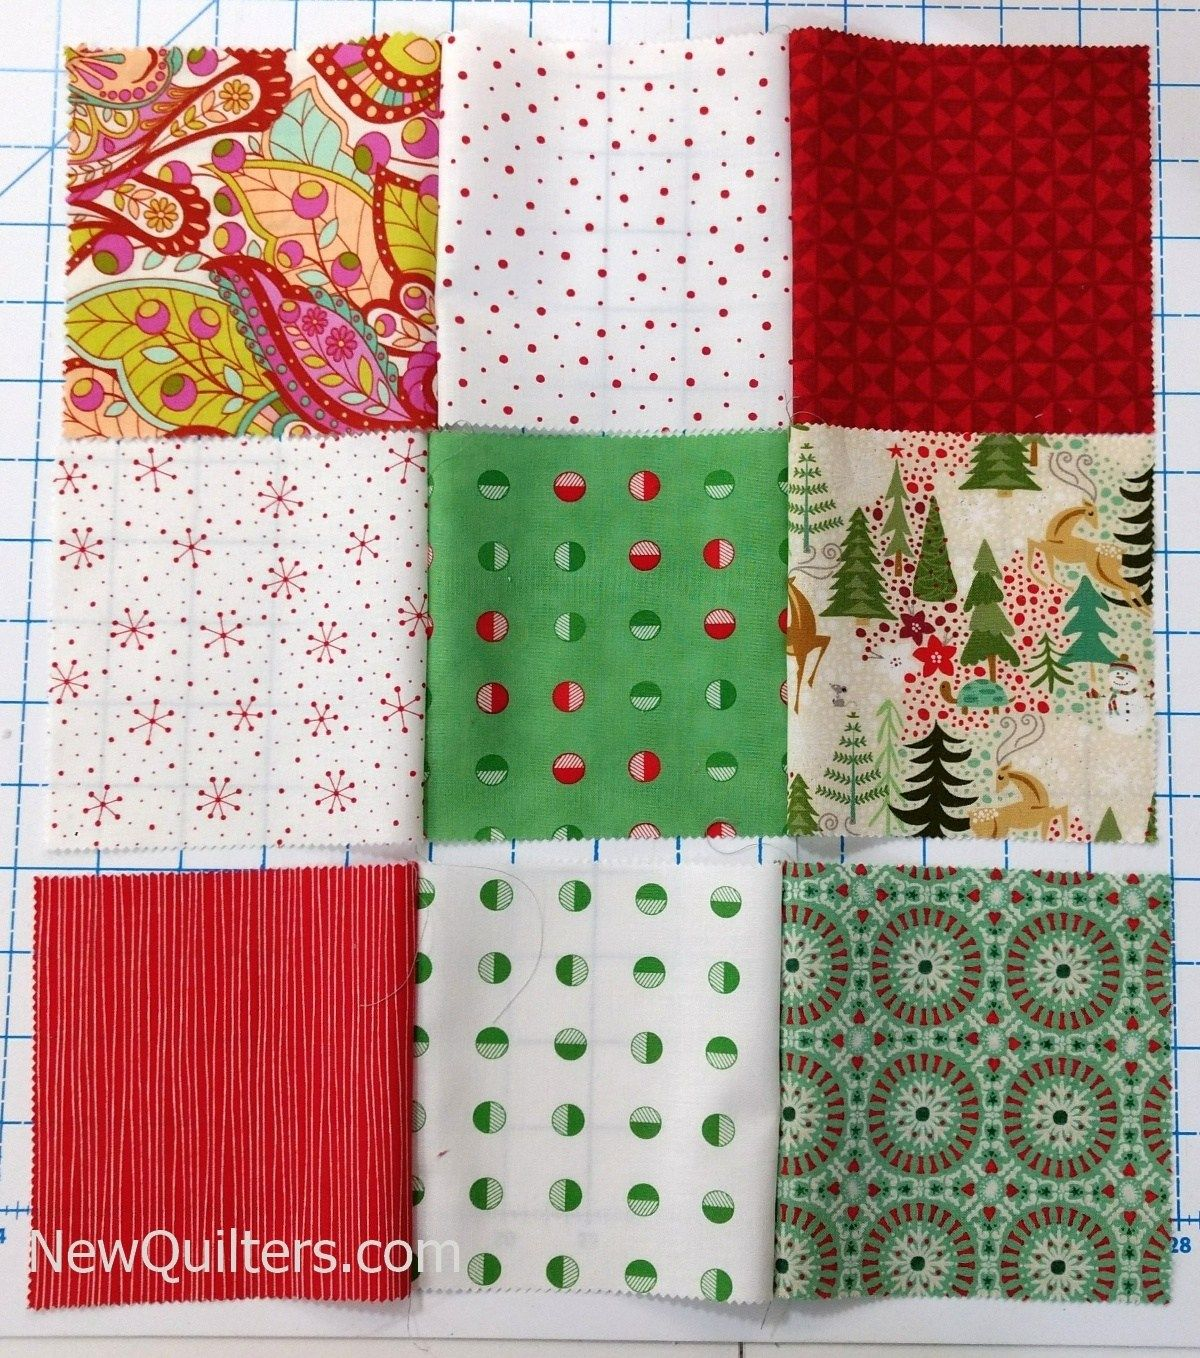 12 Days Of Christmas Quilted Table Runner Tutorial Quilted Table Runner Quilted Table Runners Christmas Table Runner